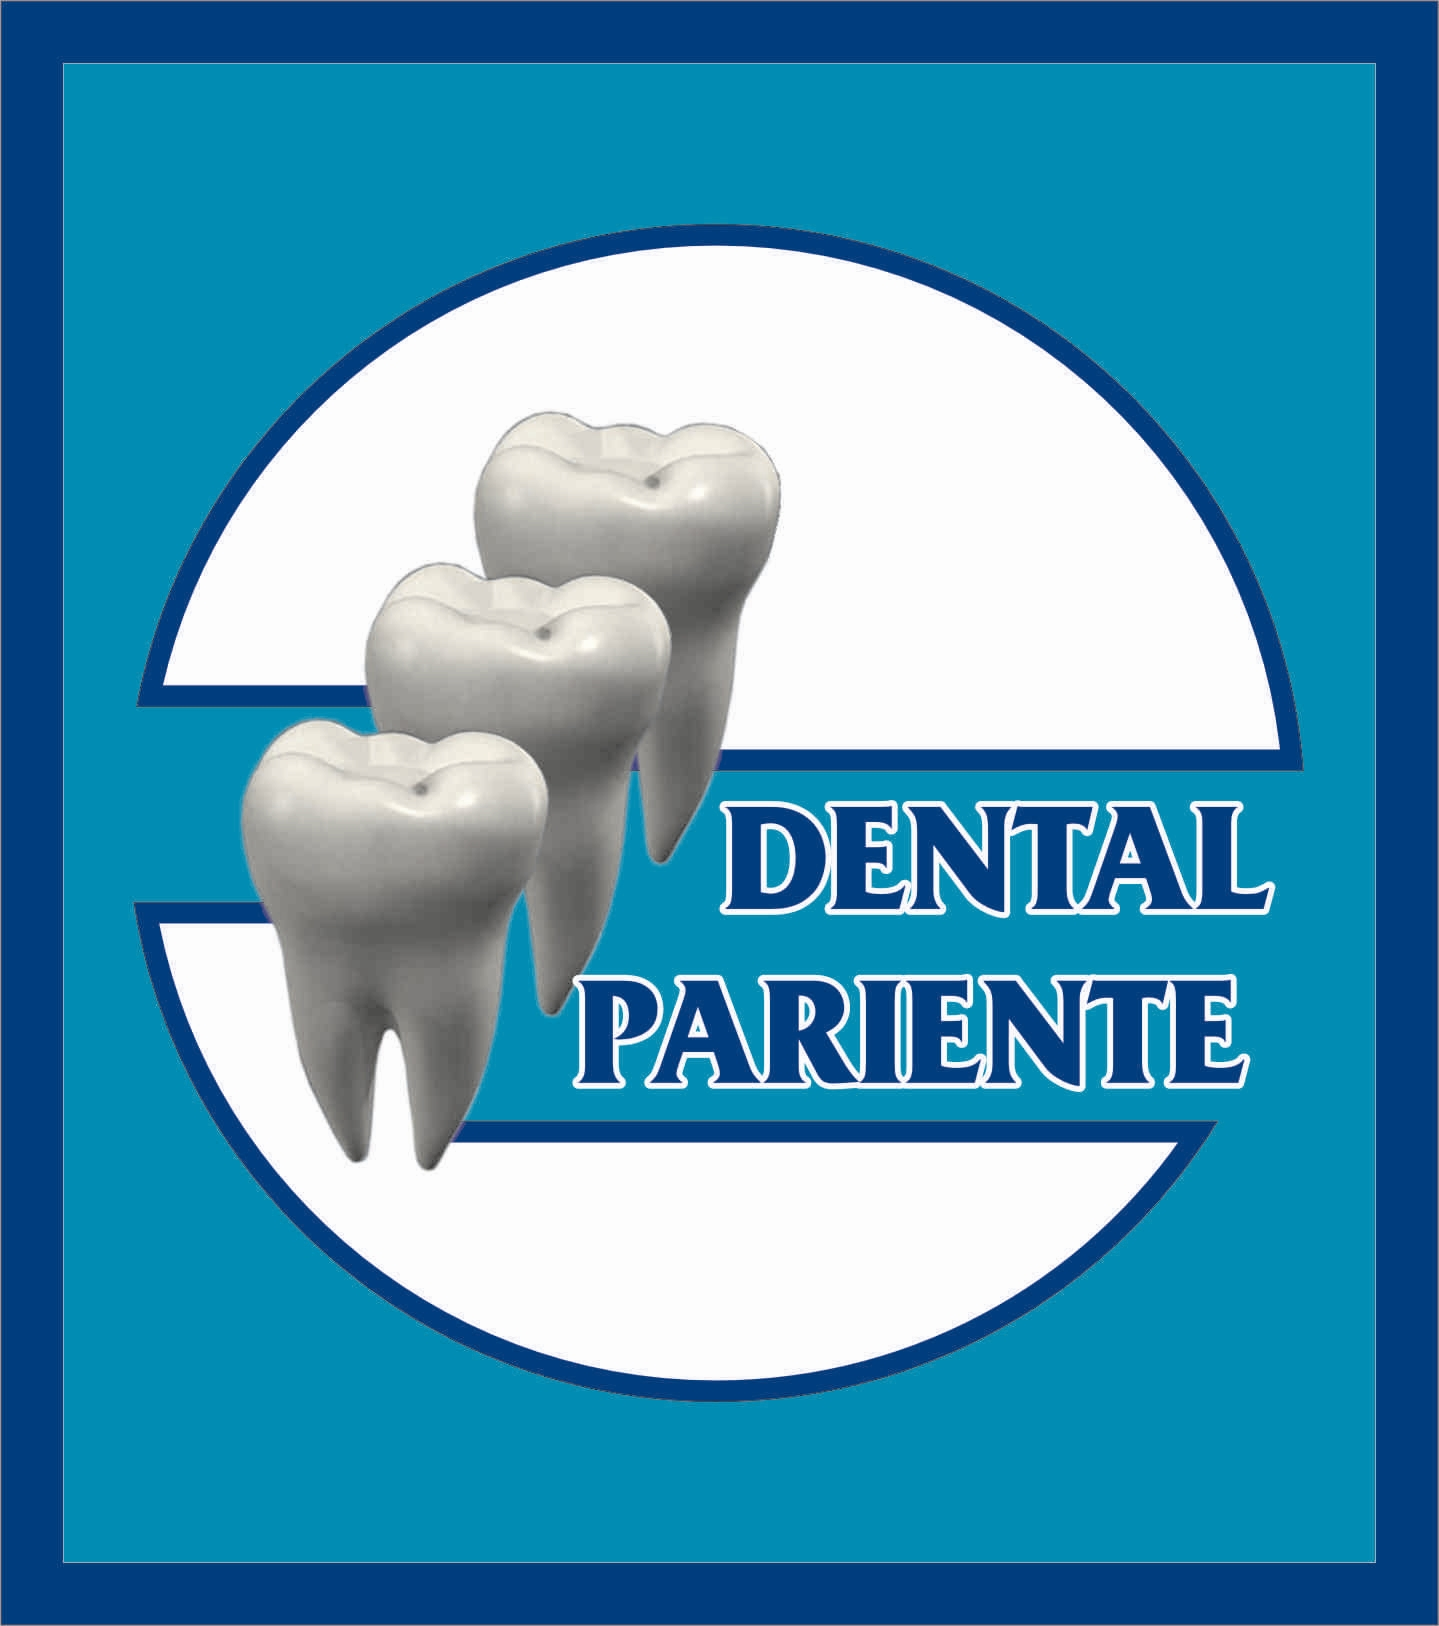 Clínica Dental Pariente